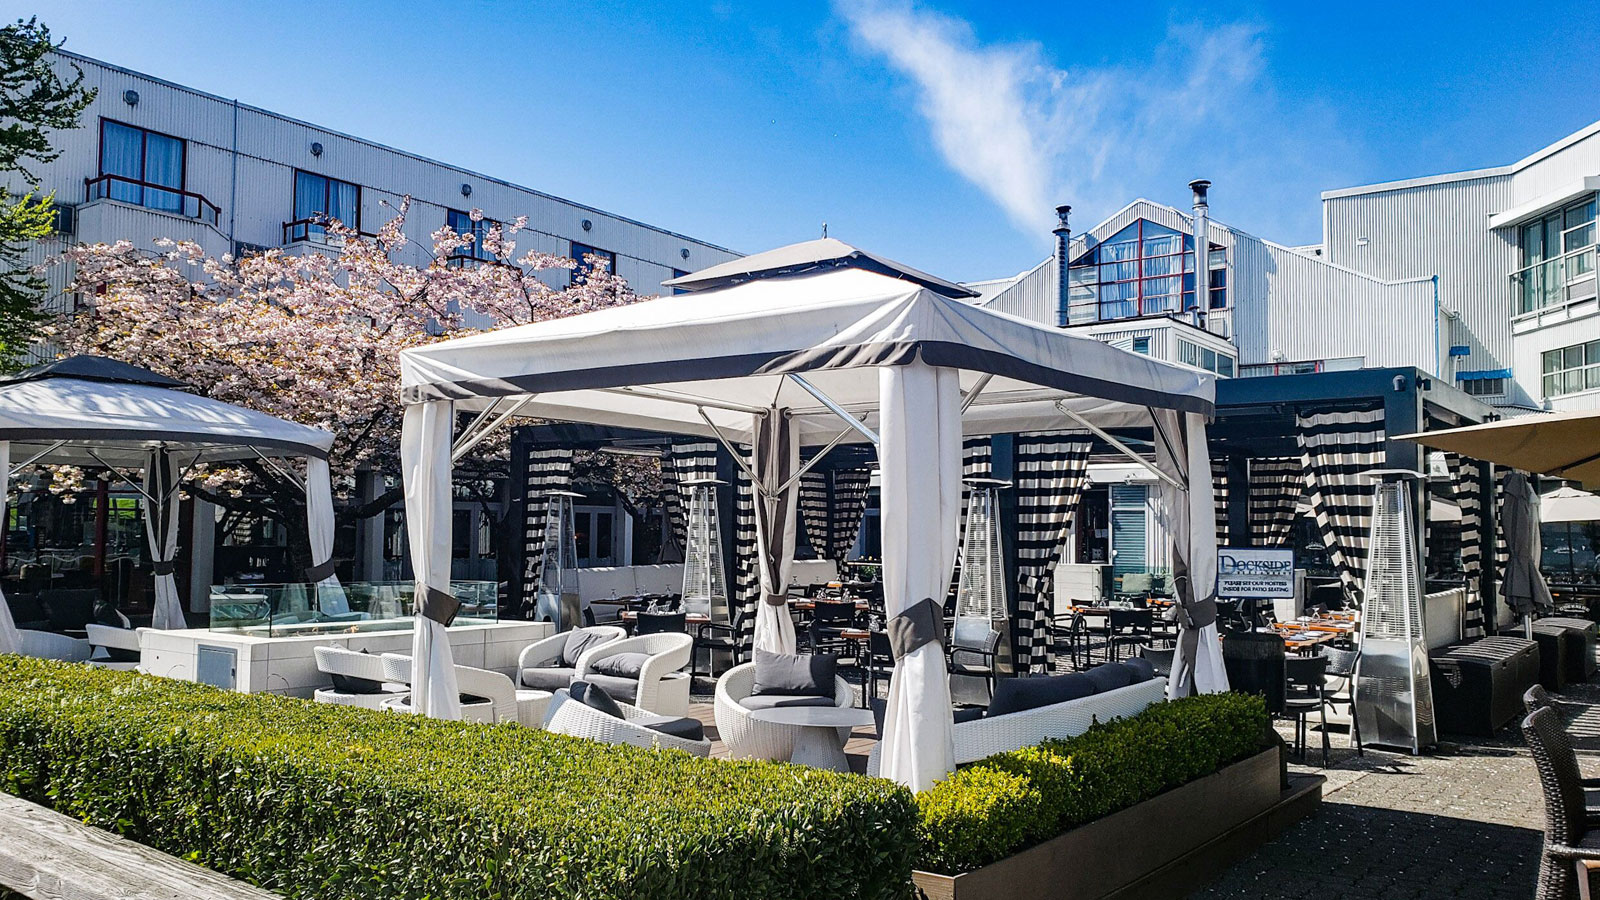 Dockside Launches New Sunday Brunch Menu to Make Patio Time More Delicious